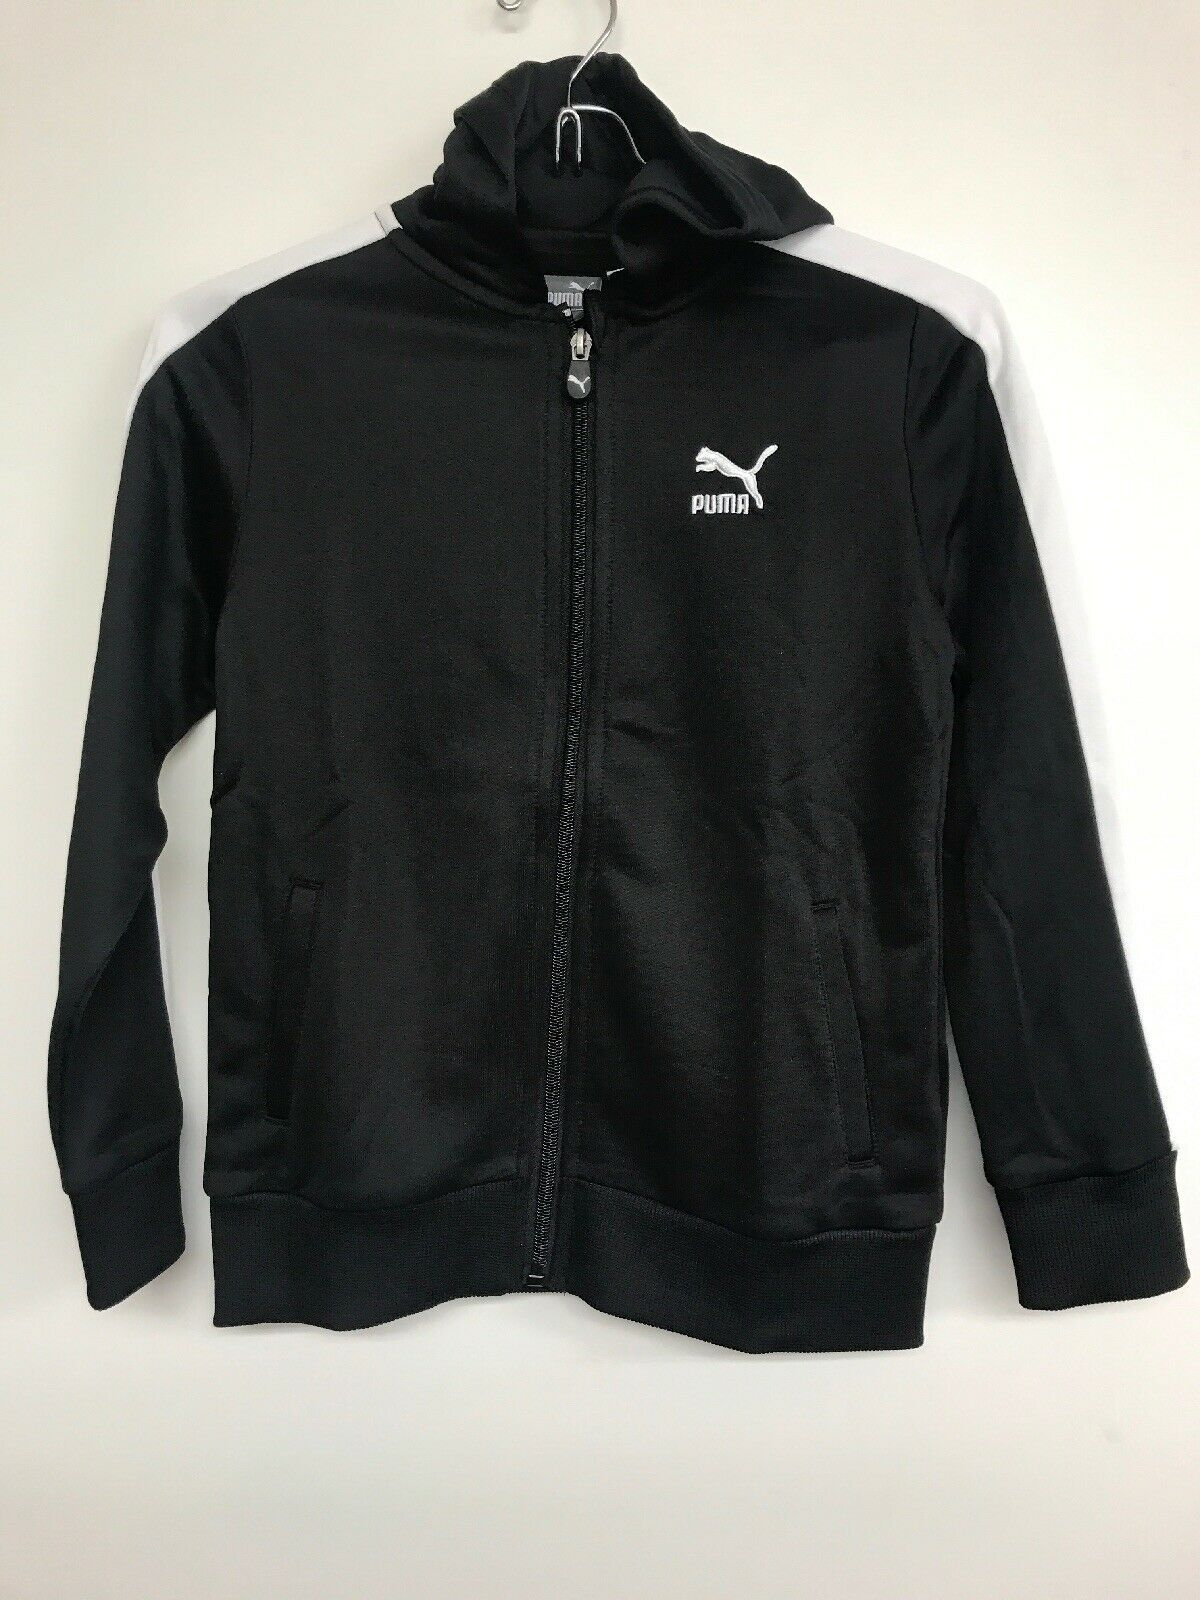 Primary image for Youth Puma Sports Hoodie Full Zip Track Jacket  Black/ White   Size 7